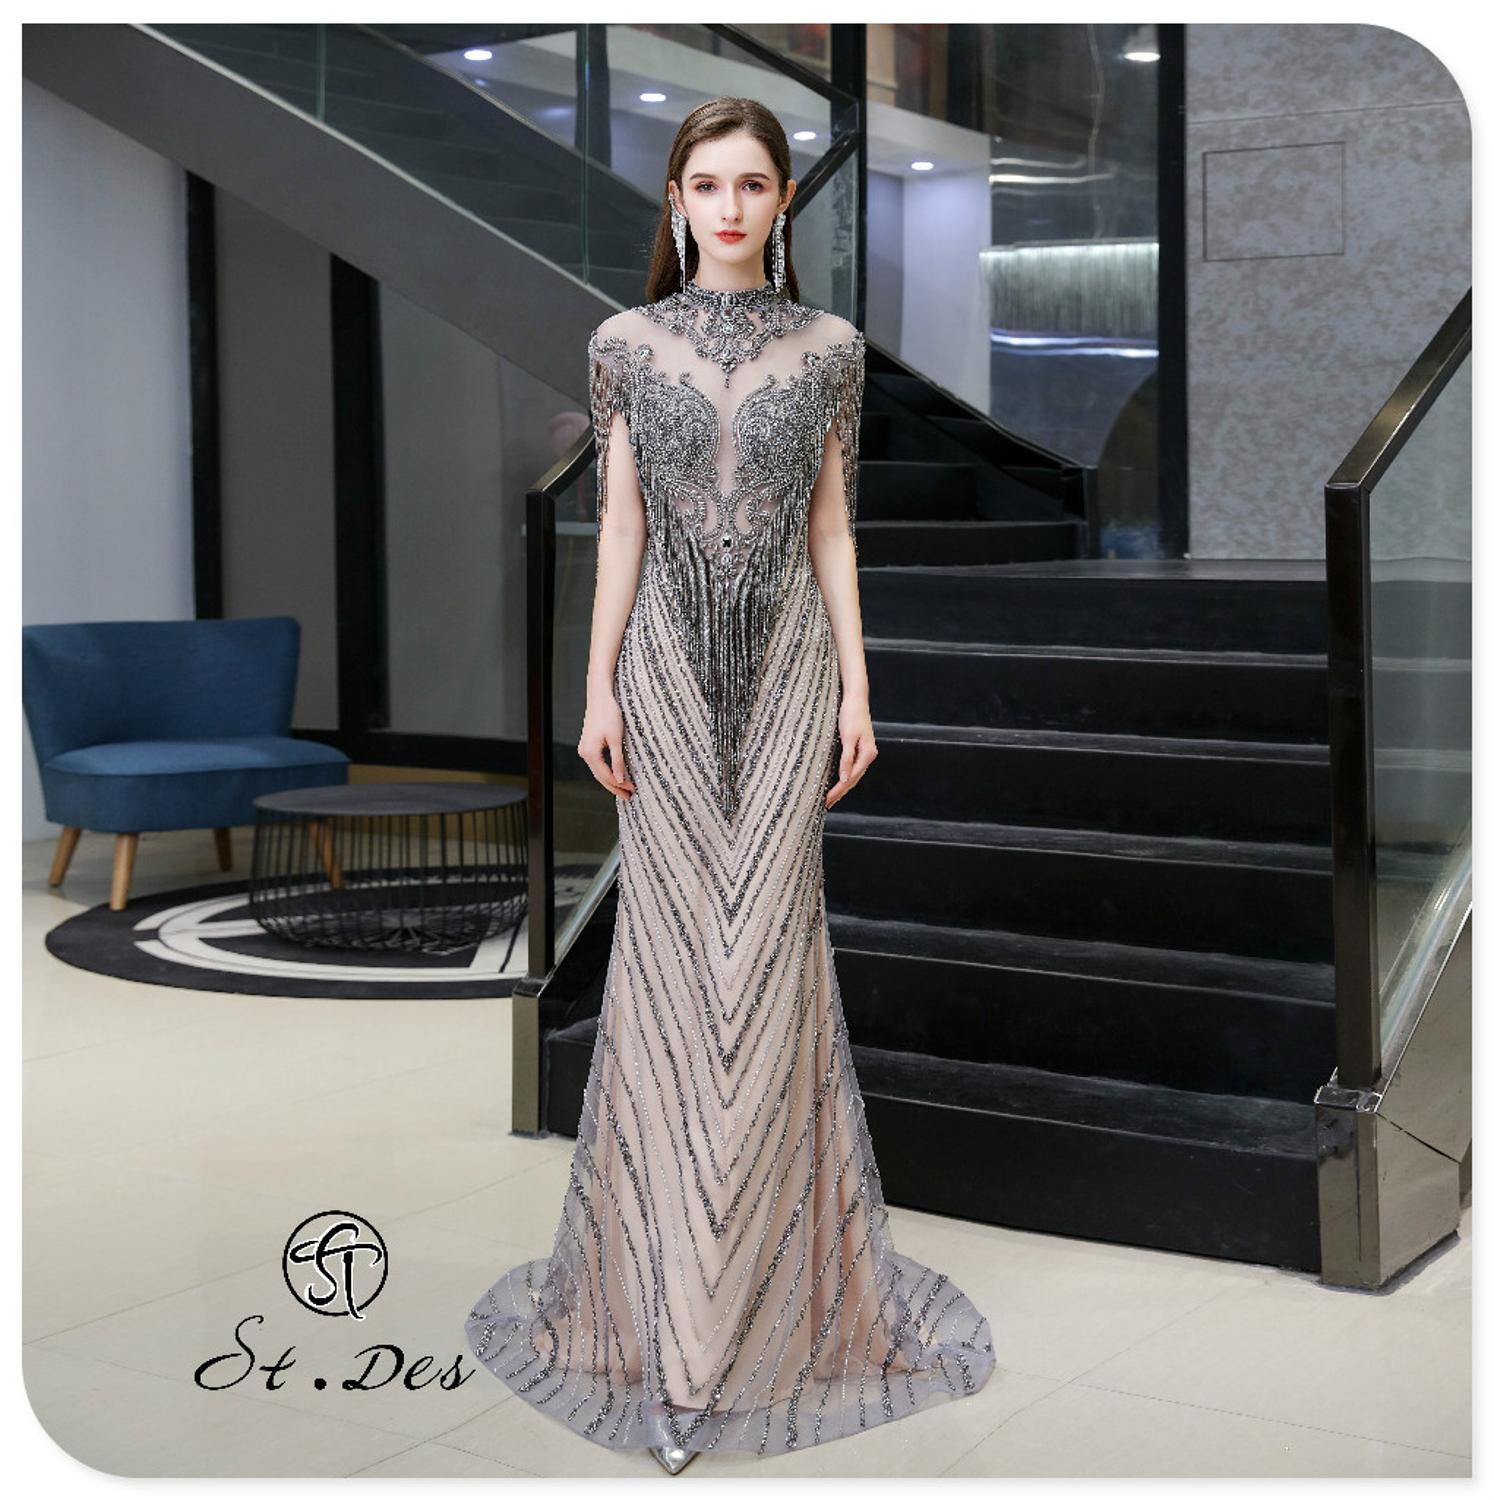 S.T.DES Evening Dress 2020 New Arrival Round Neck Mermaid Lace Short Sleeve Floor Length Elegant Party Dress Dinner Gowns